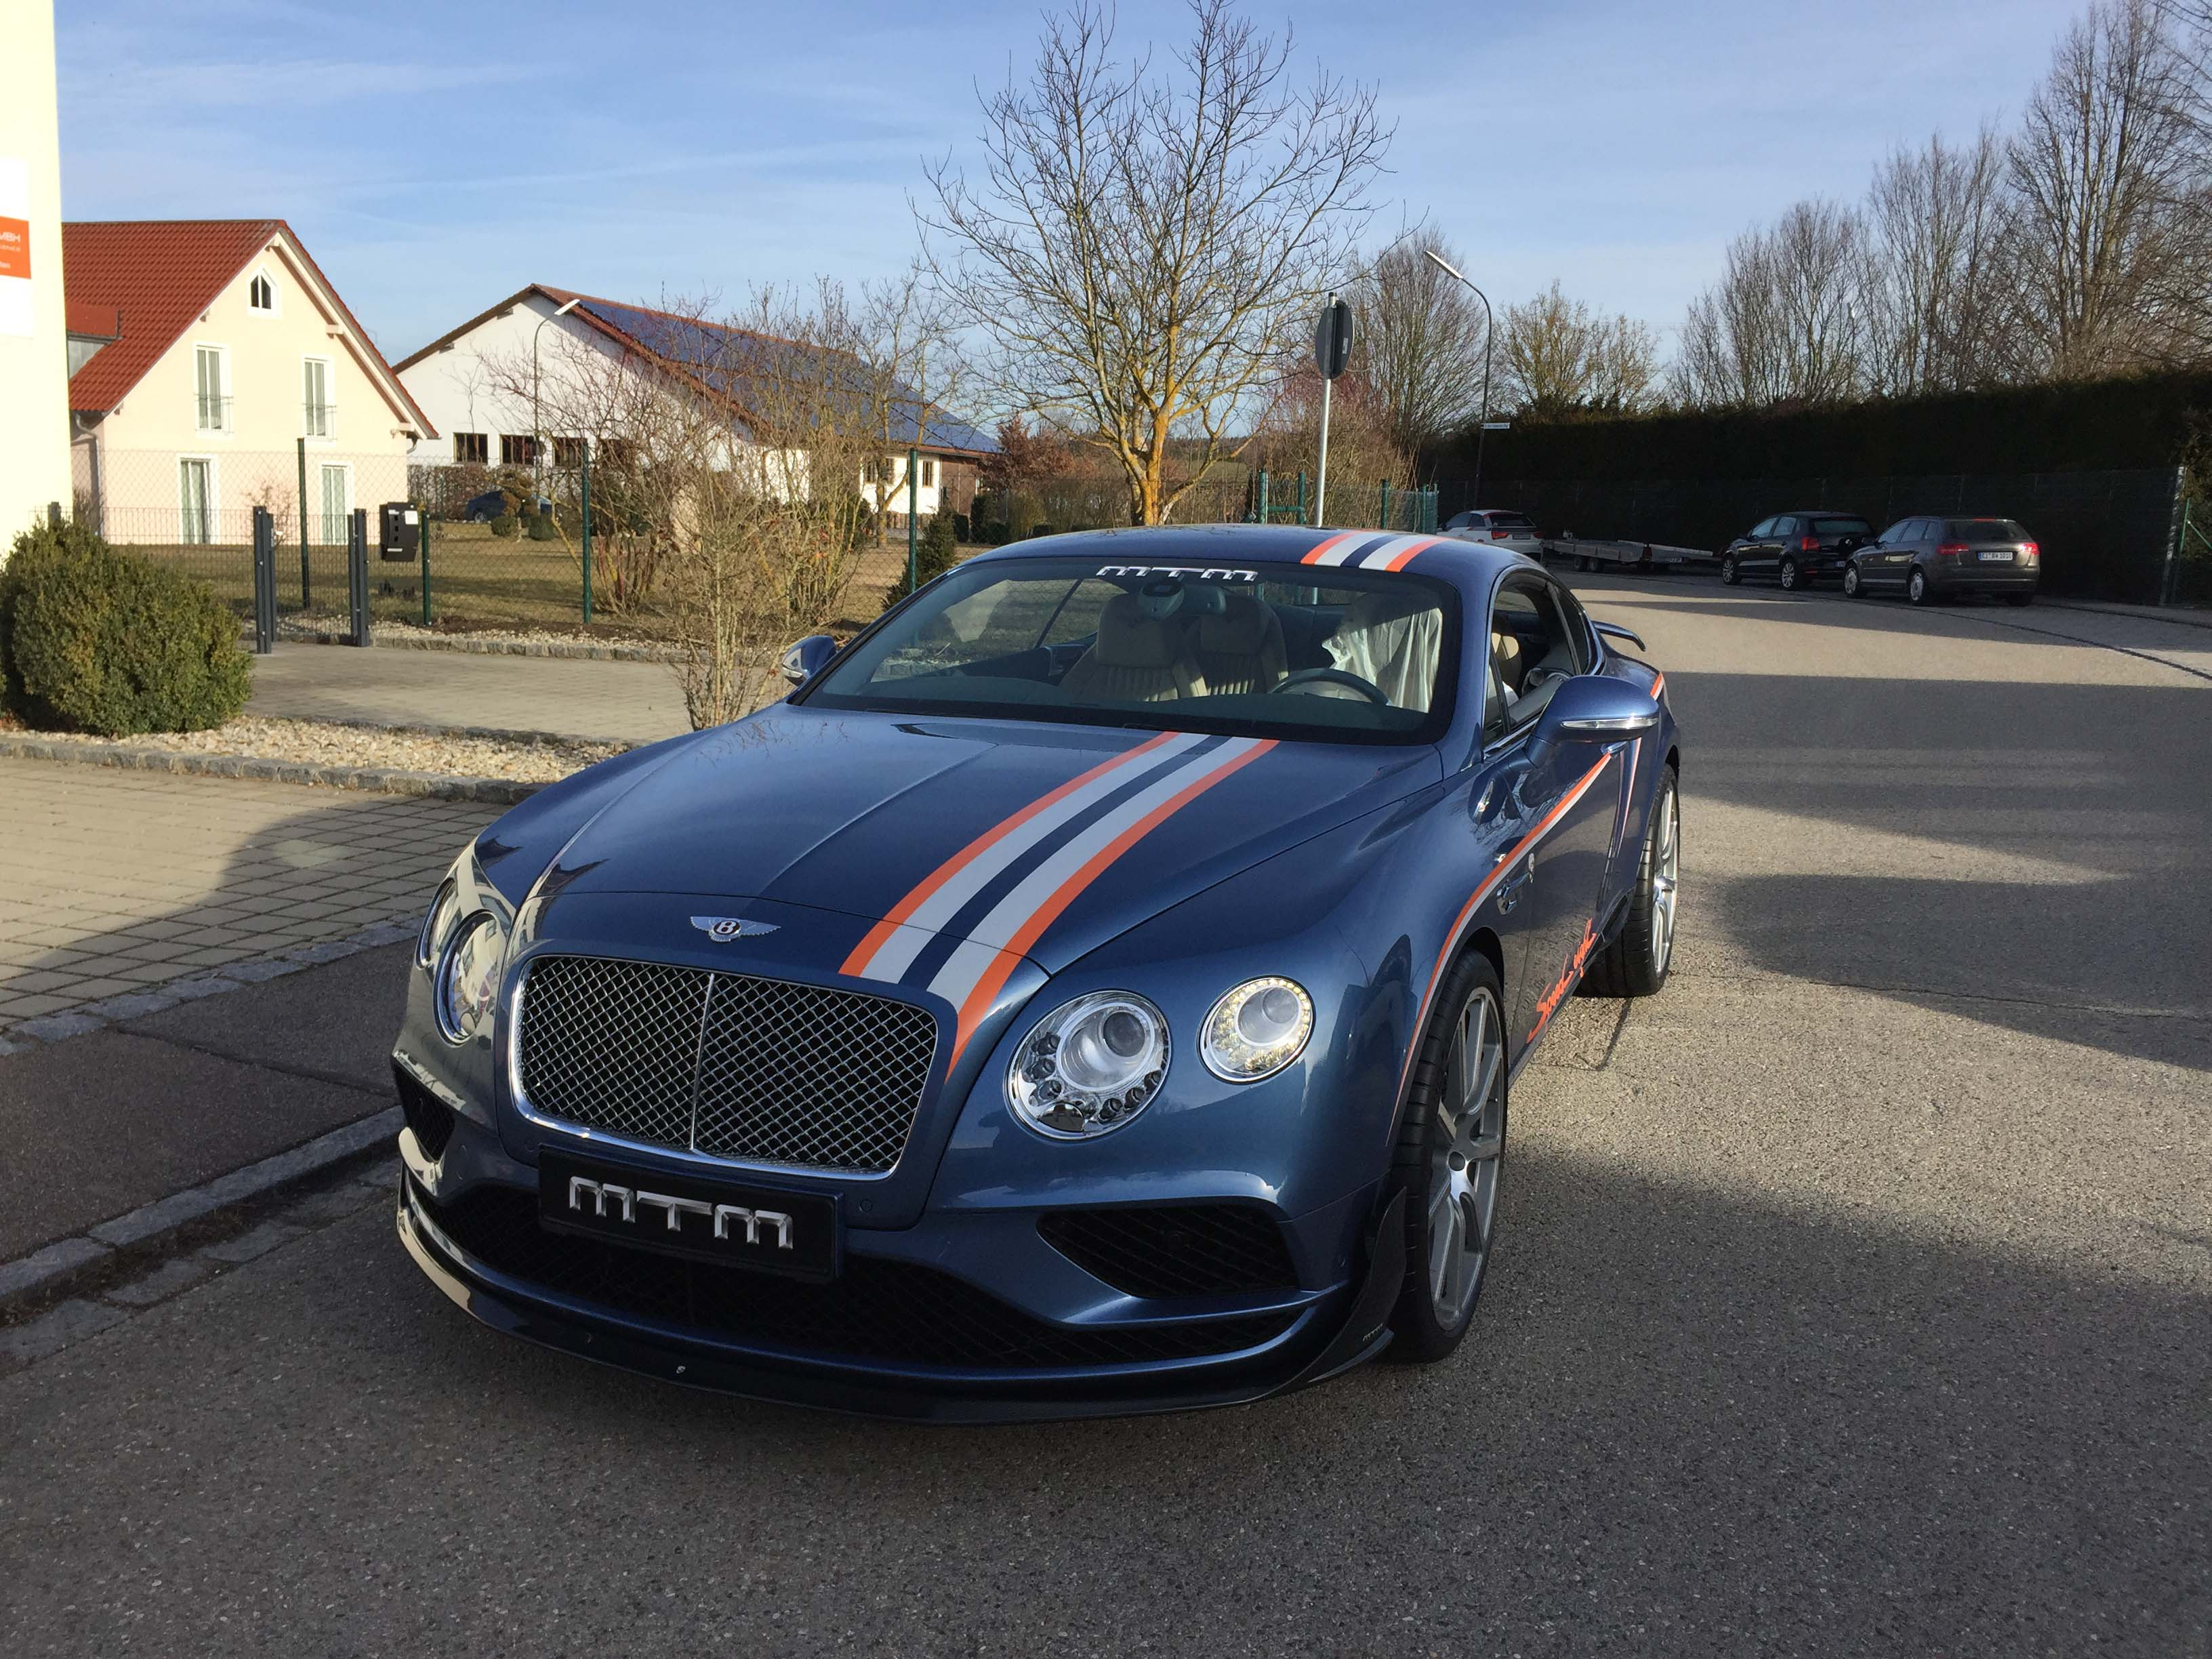 mtm-bentley-gt-birkin-edition-speed-eight-design-carwrap_7